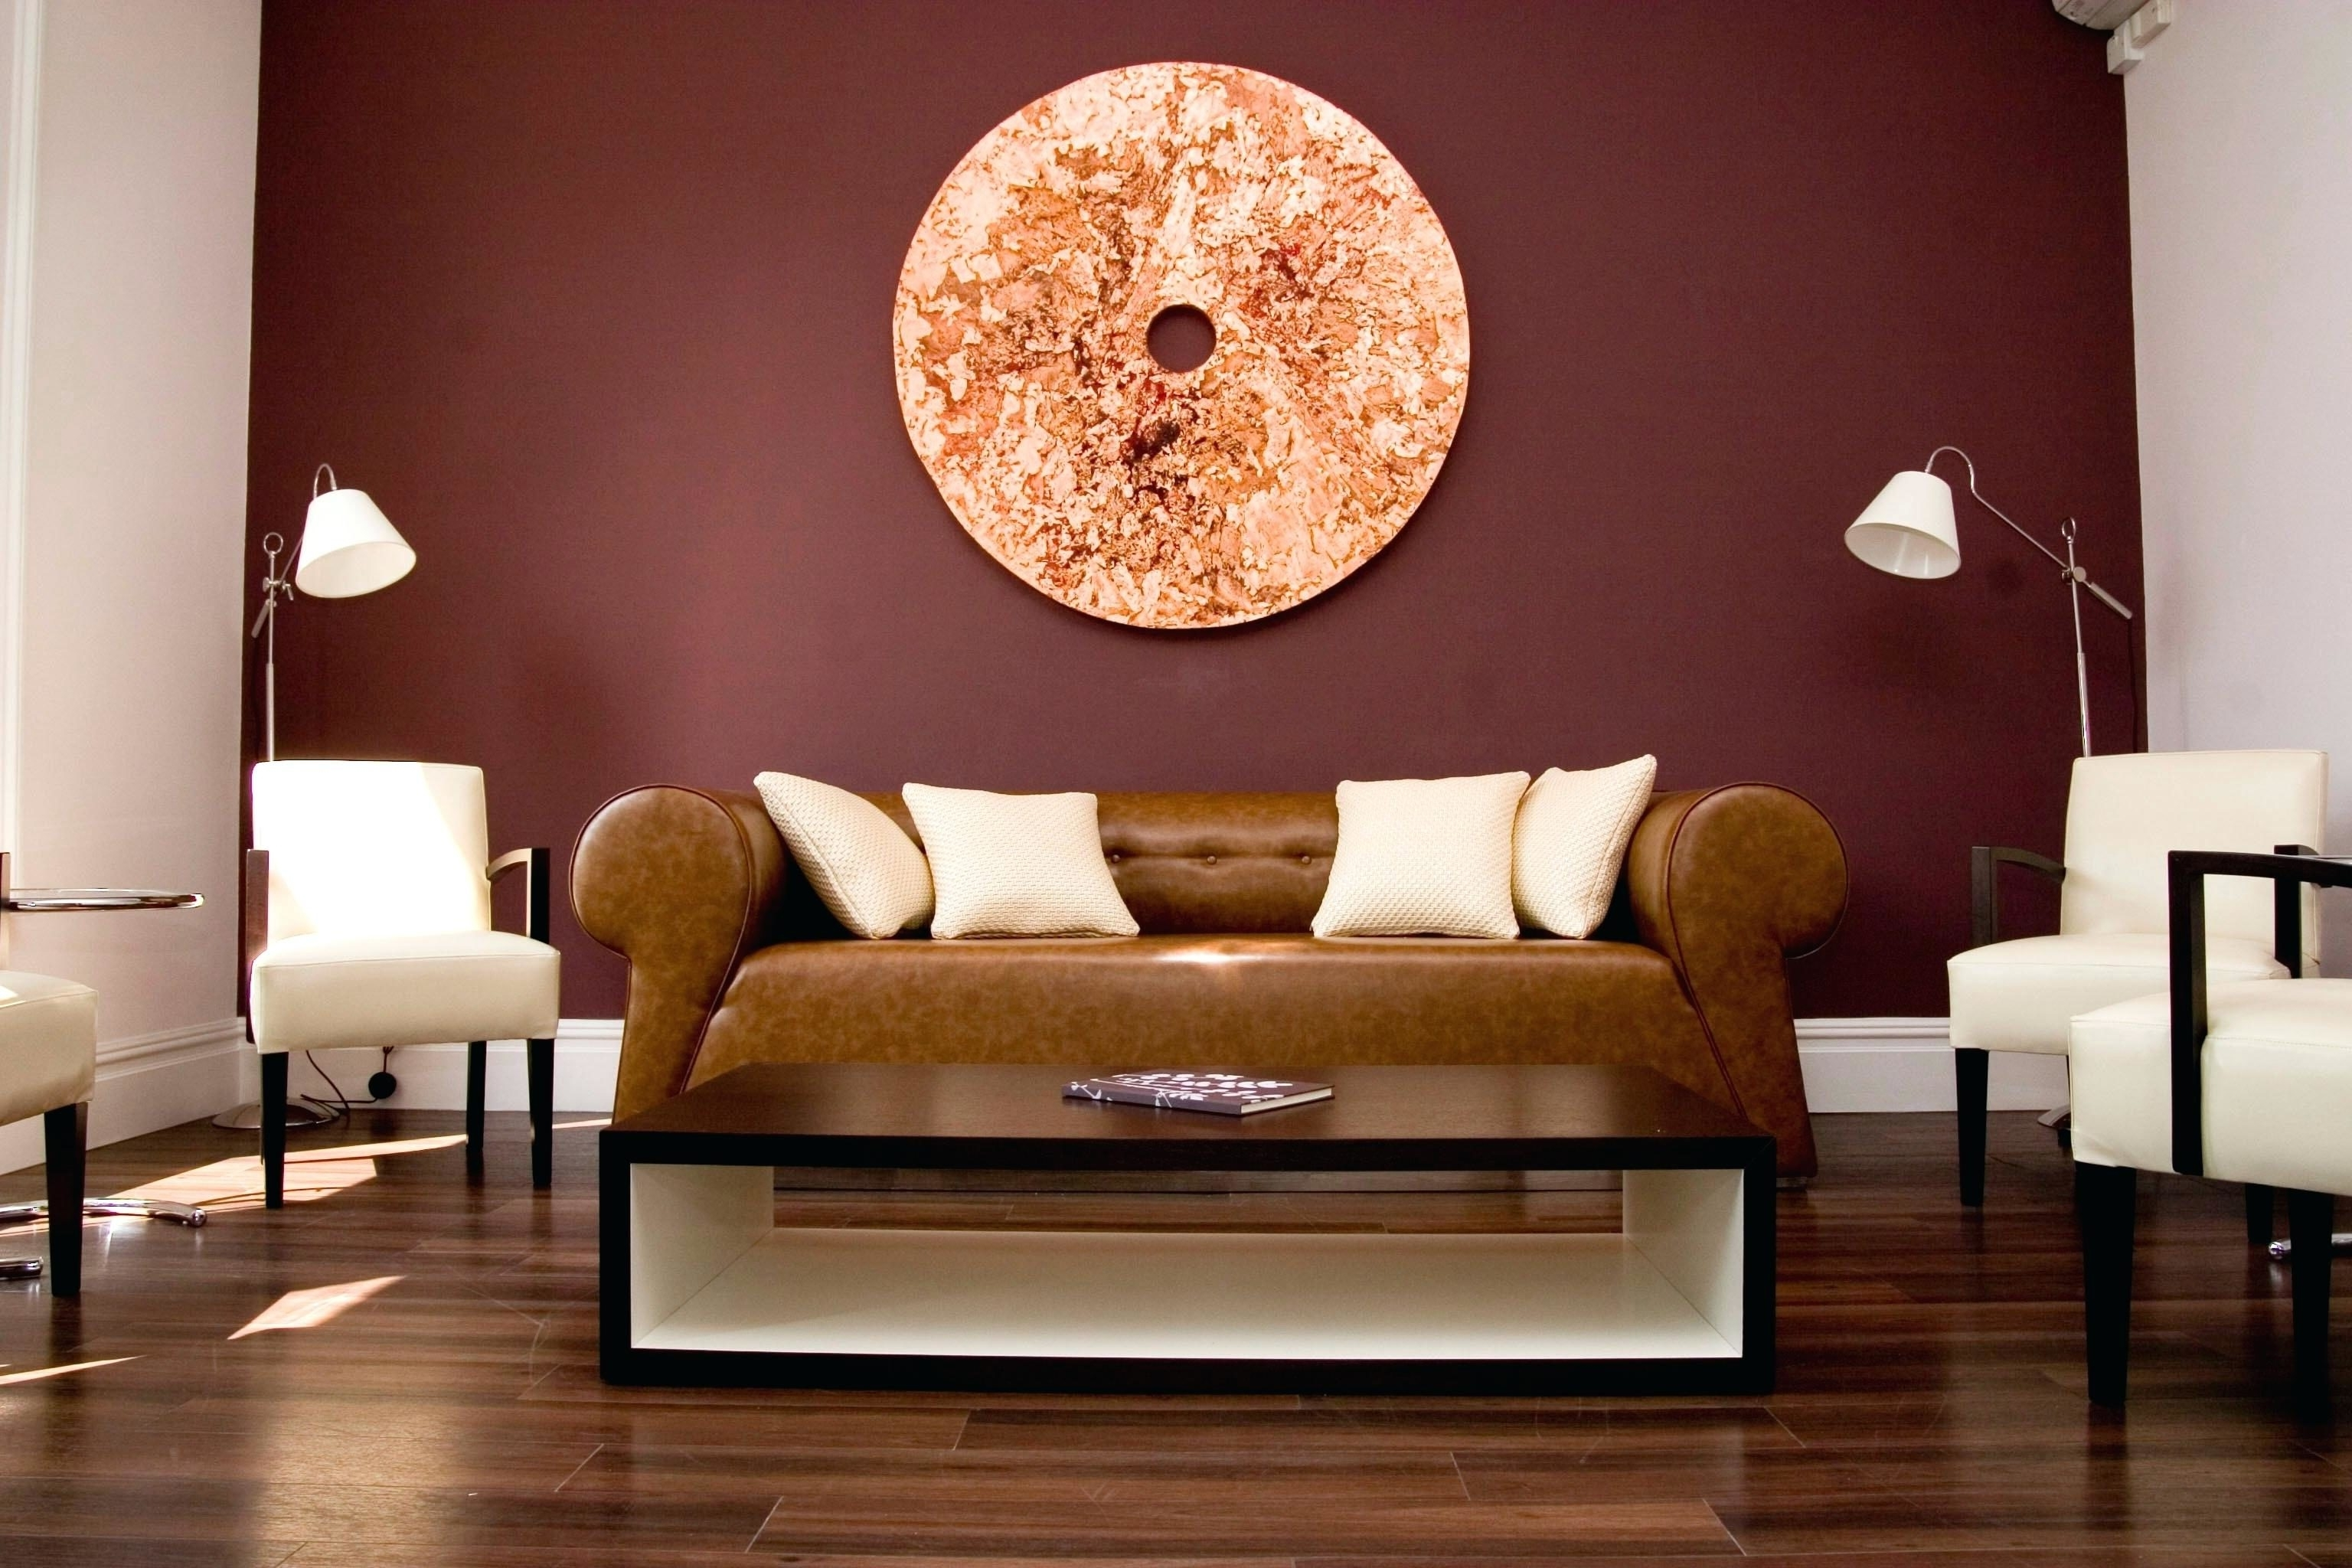 Cozy Living Room With Smart Paint Color Matches Maroon Accent Wall Within Recent Maroon Wall Accents (View 3 of 15)